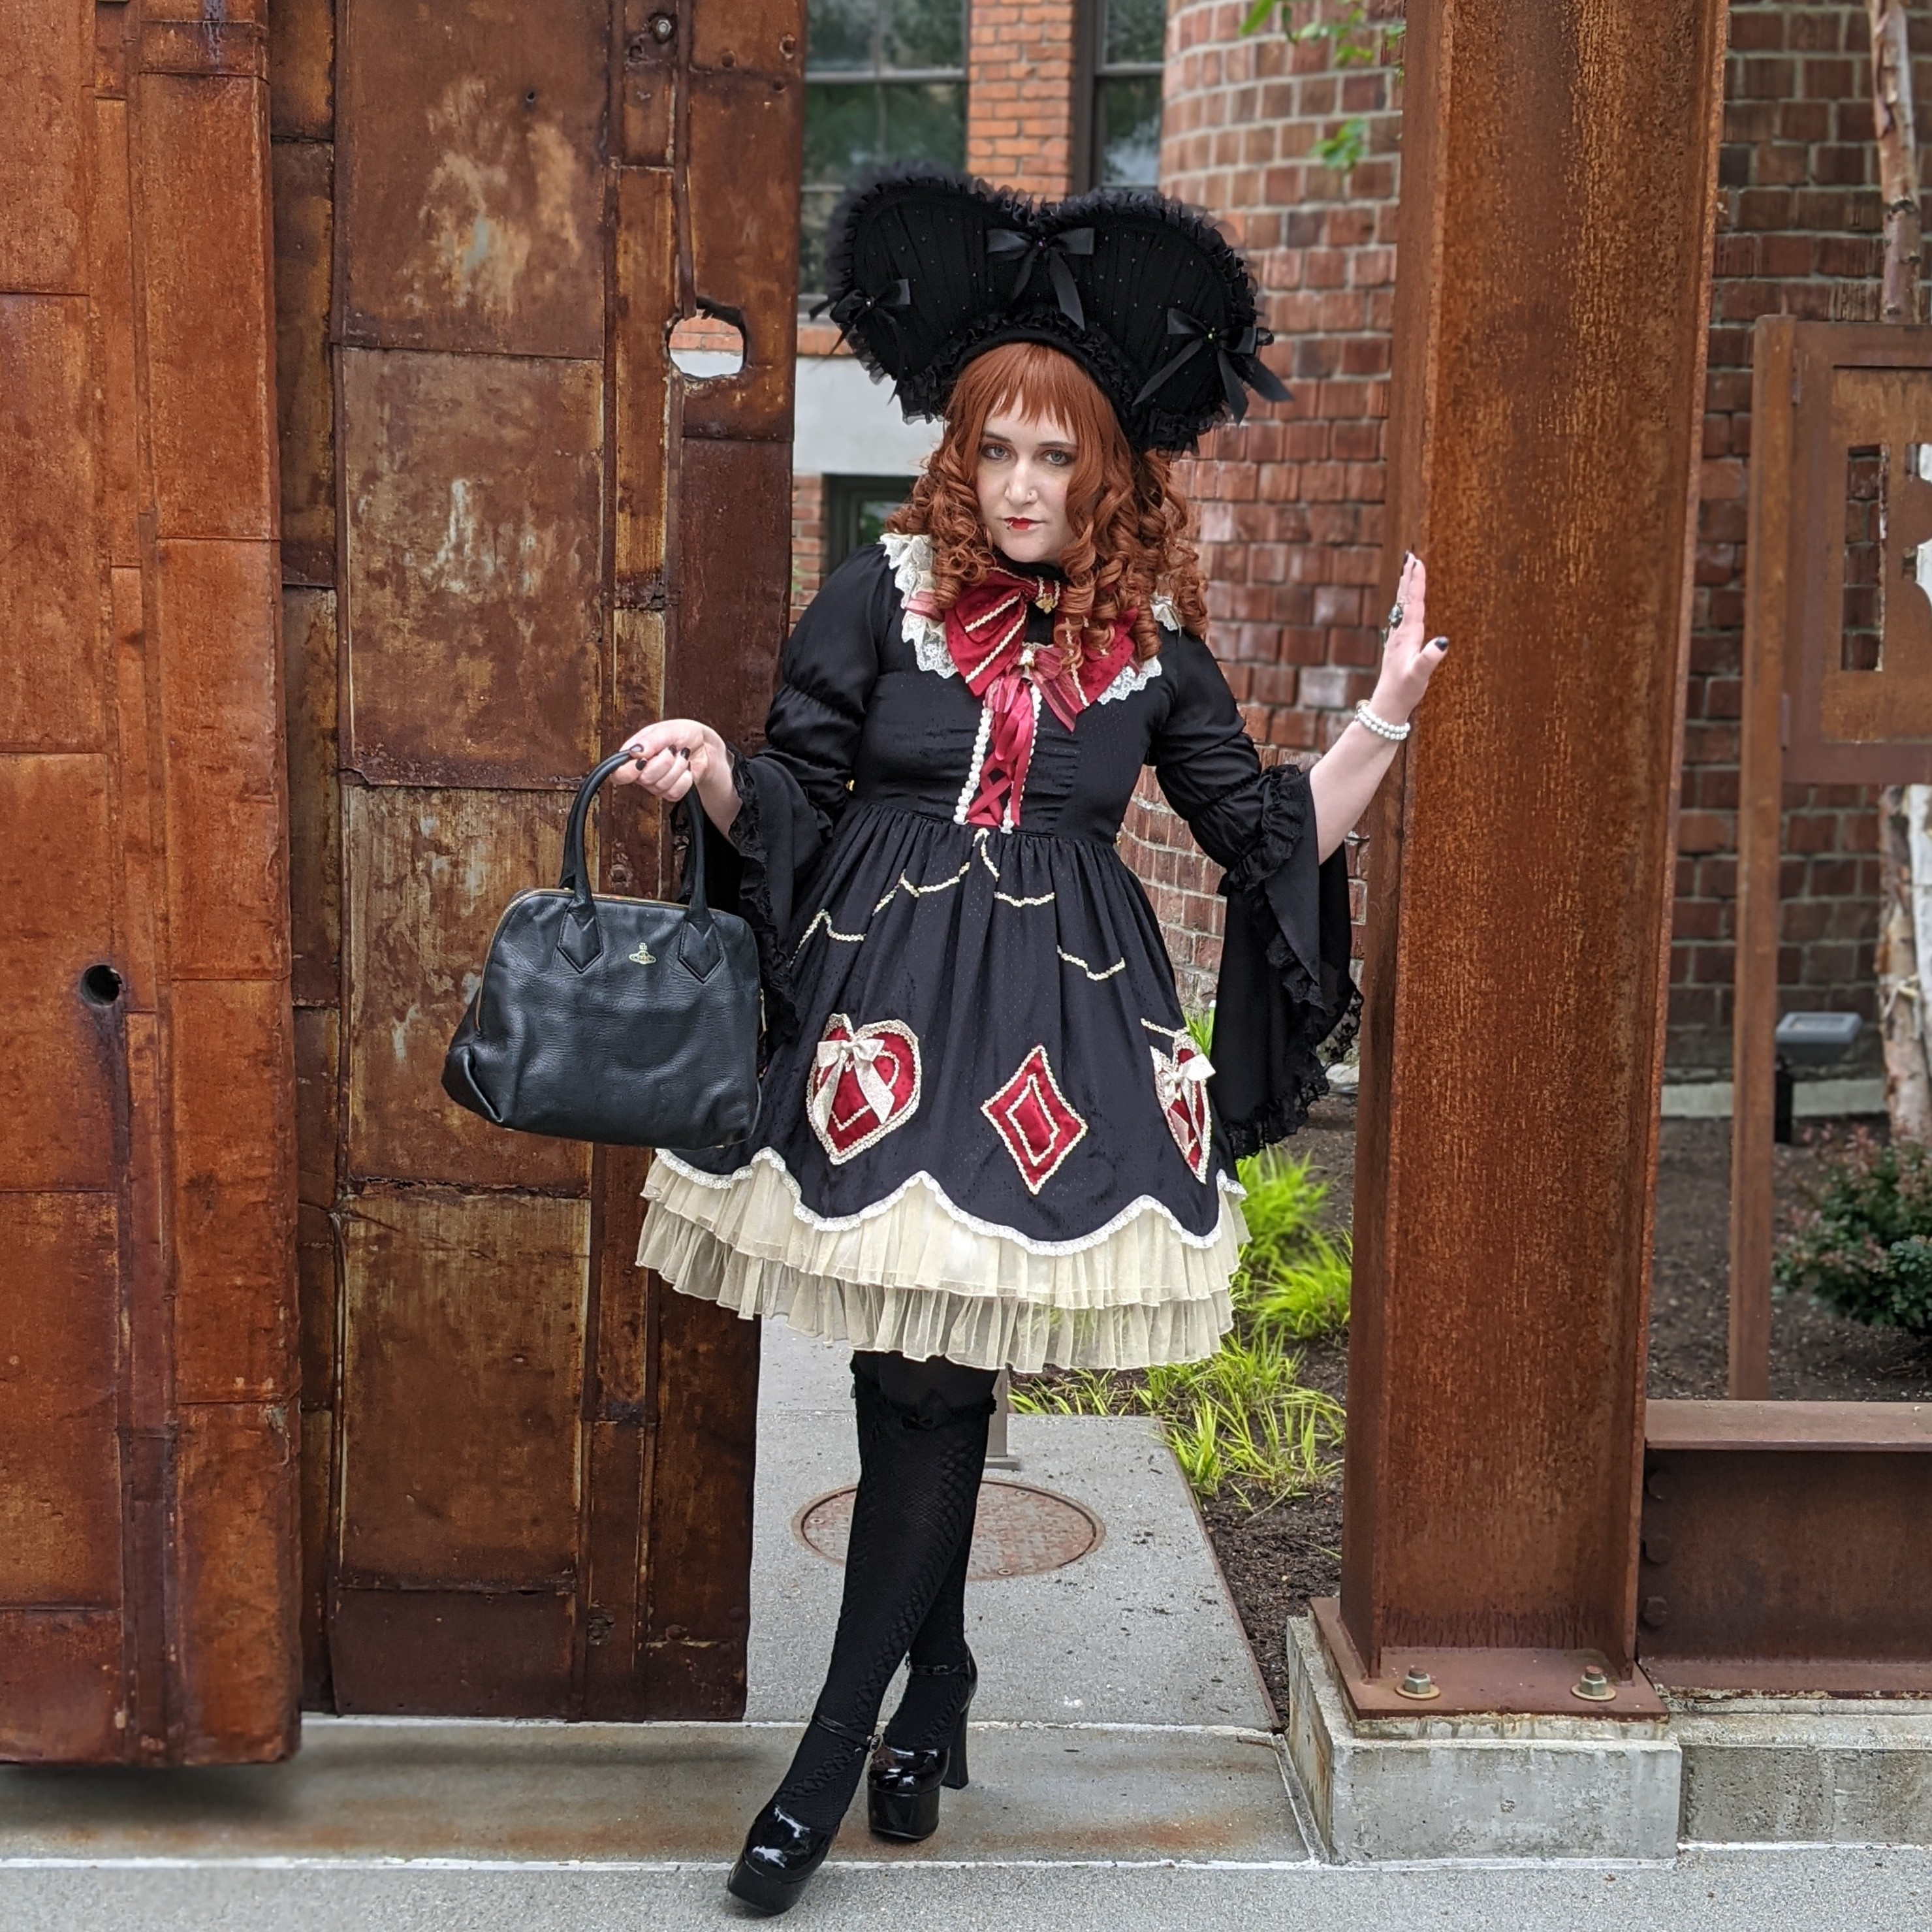 Nif, a white femme wearing a curled auburn wig, wears BTSSB's White Rabbit's Heart Cards in black. She is wearing the Empire Noir Sull'Amore bonnet in black, a large, heart-shaped headdress. She is wearing an Atelier Pierrot blouse with princess sleeves, black fishnet stockings over black tights, and dramatic black heels. She is holding a Vivienne Westwood bag in her right hand, and wearing a bracelet and a ring on her left hand. She is wearing a red pinbow like a bow tie. She is standing in a rusted metal and wood doorway.